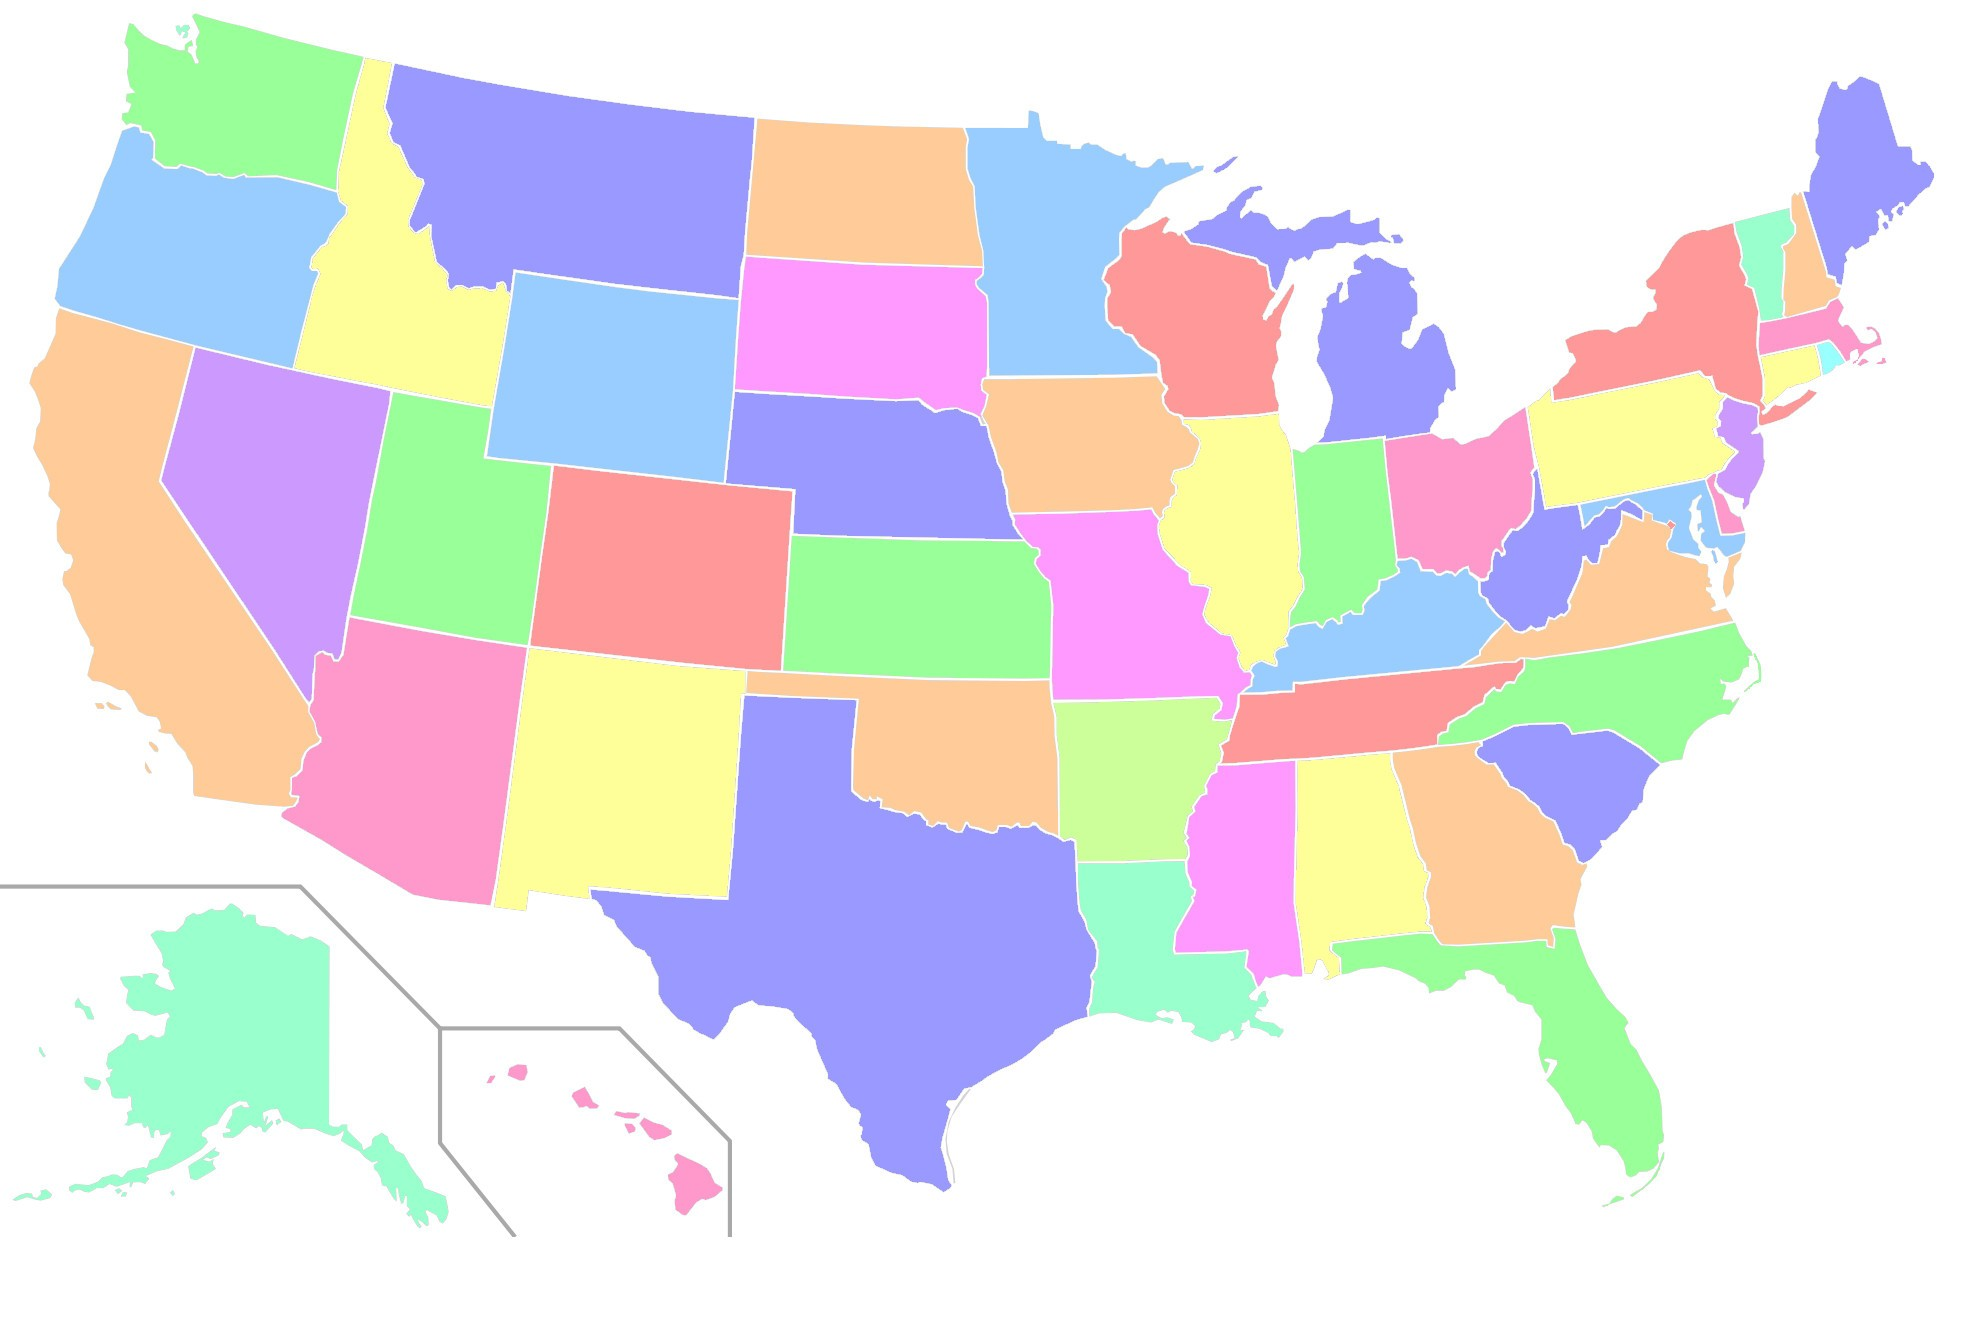 Us States Vector at GetDrawings.com | Free for personal use ...